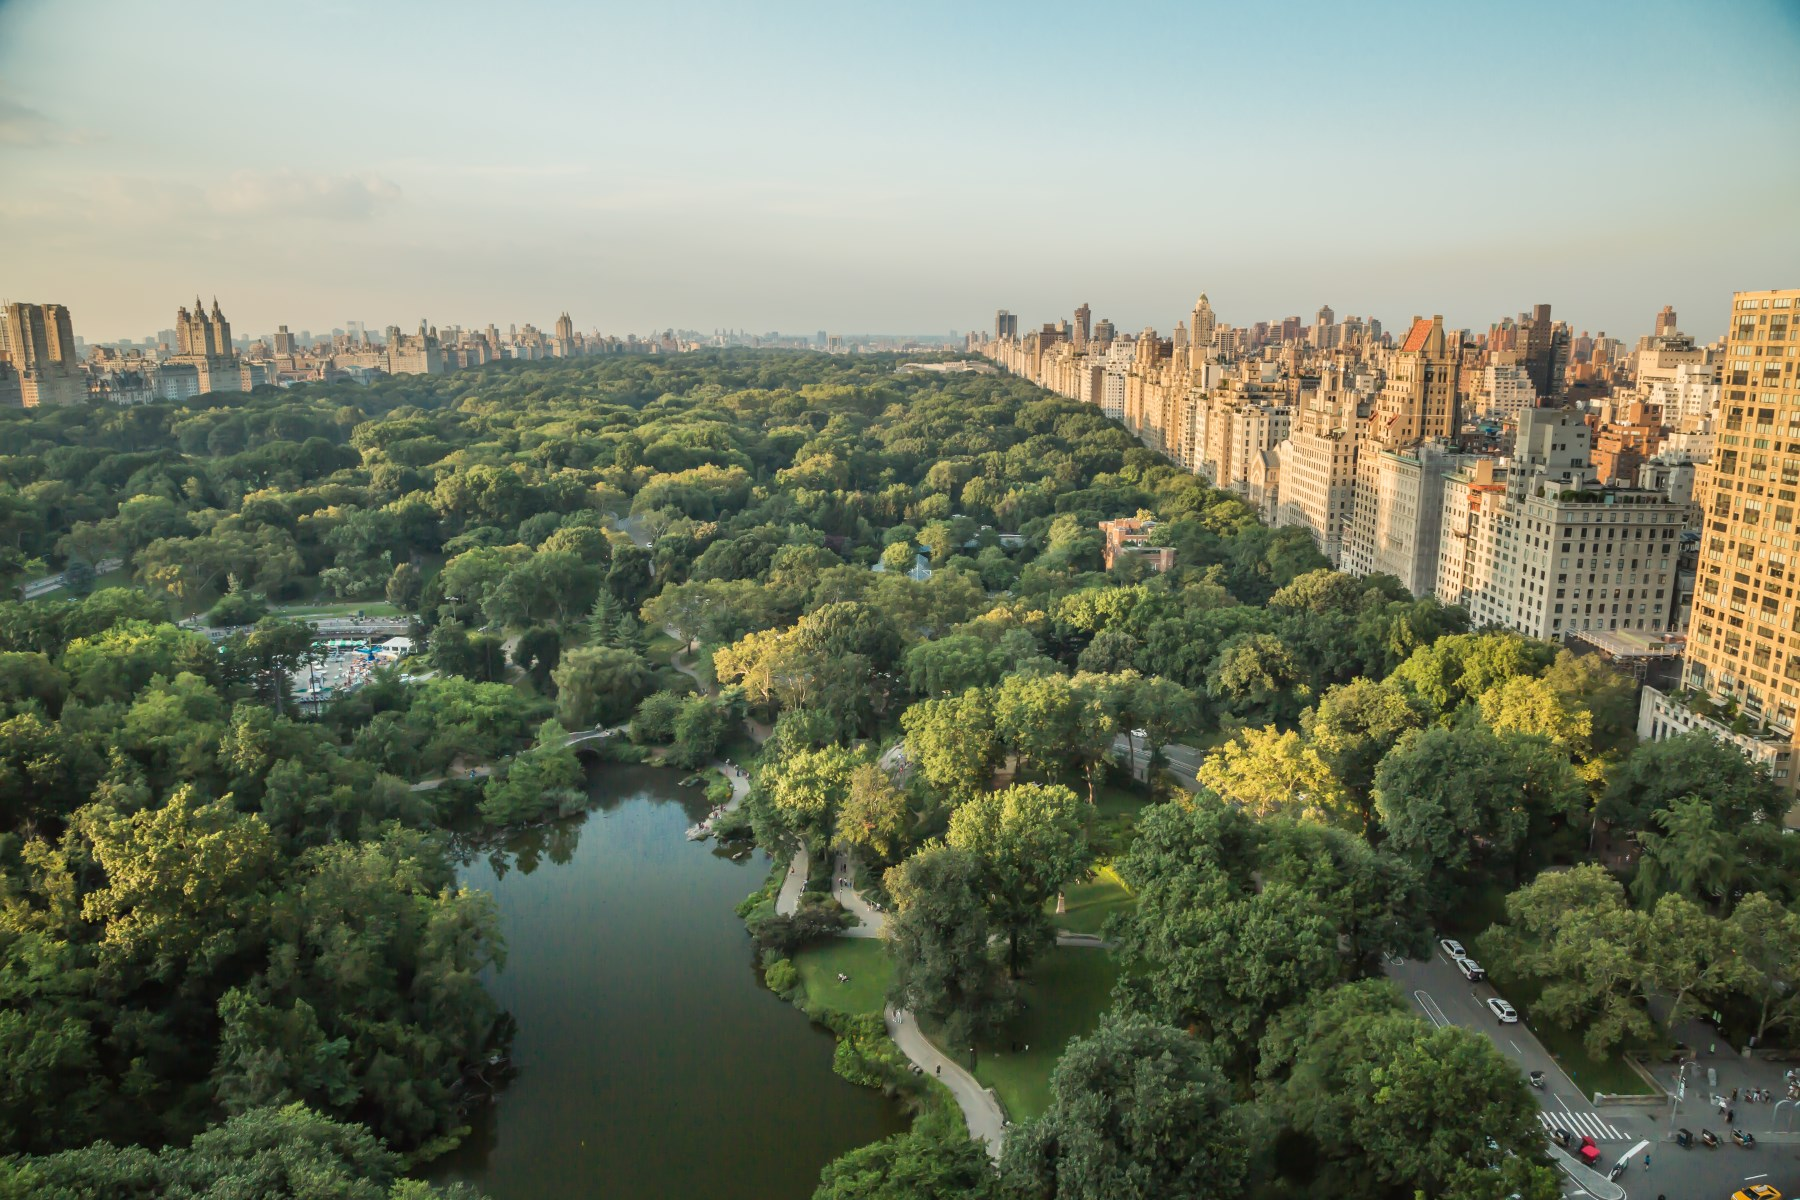 Appartement en copropriété pour l Vente à 1 Central Park South APT 2003 1 Central Park South PH 2003, Midtown West, New York, New York, 10019 États-Unis